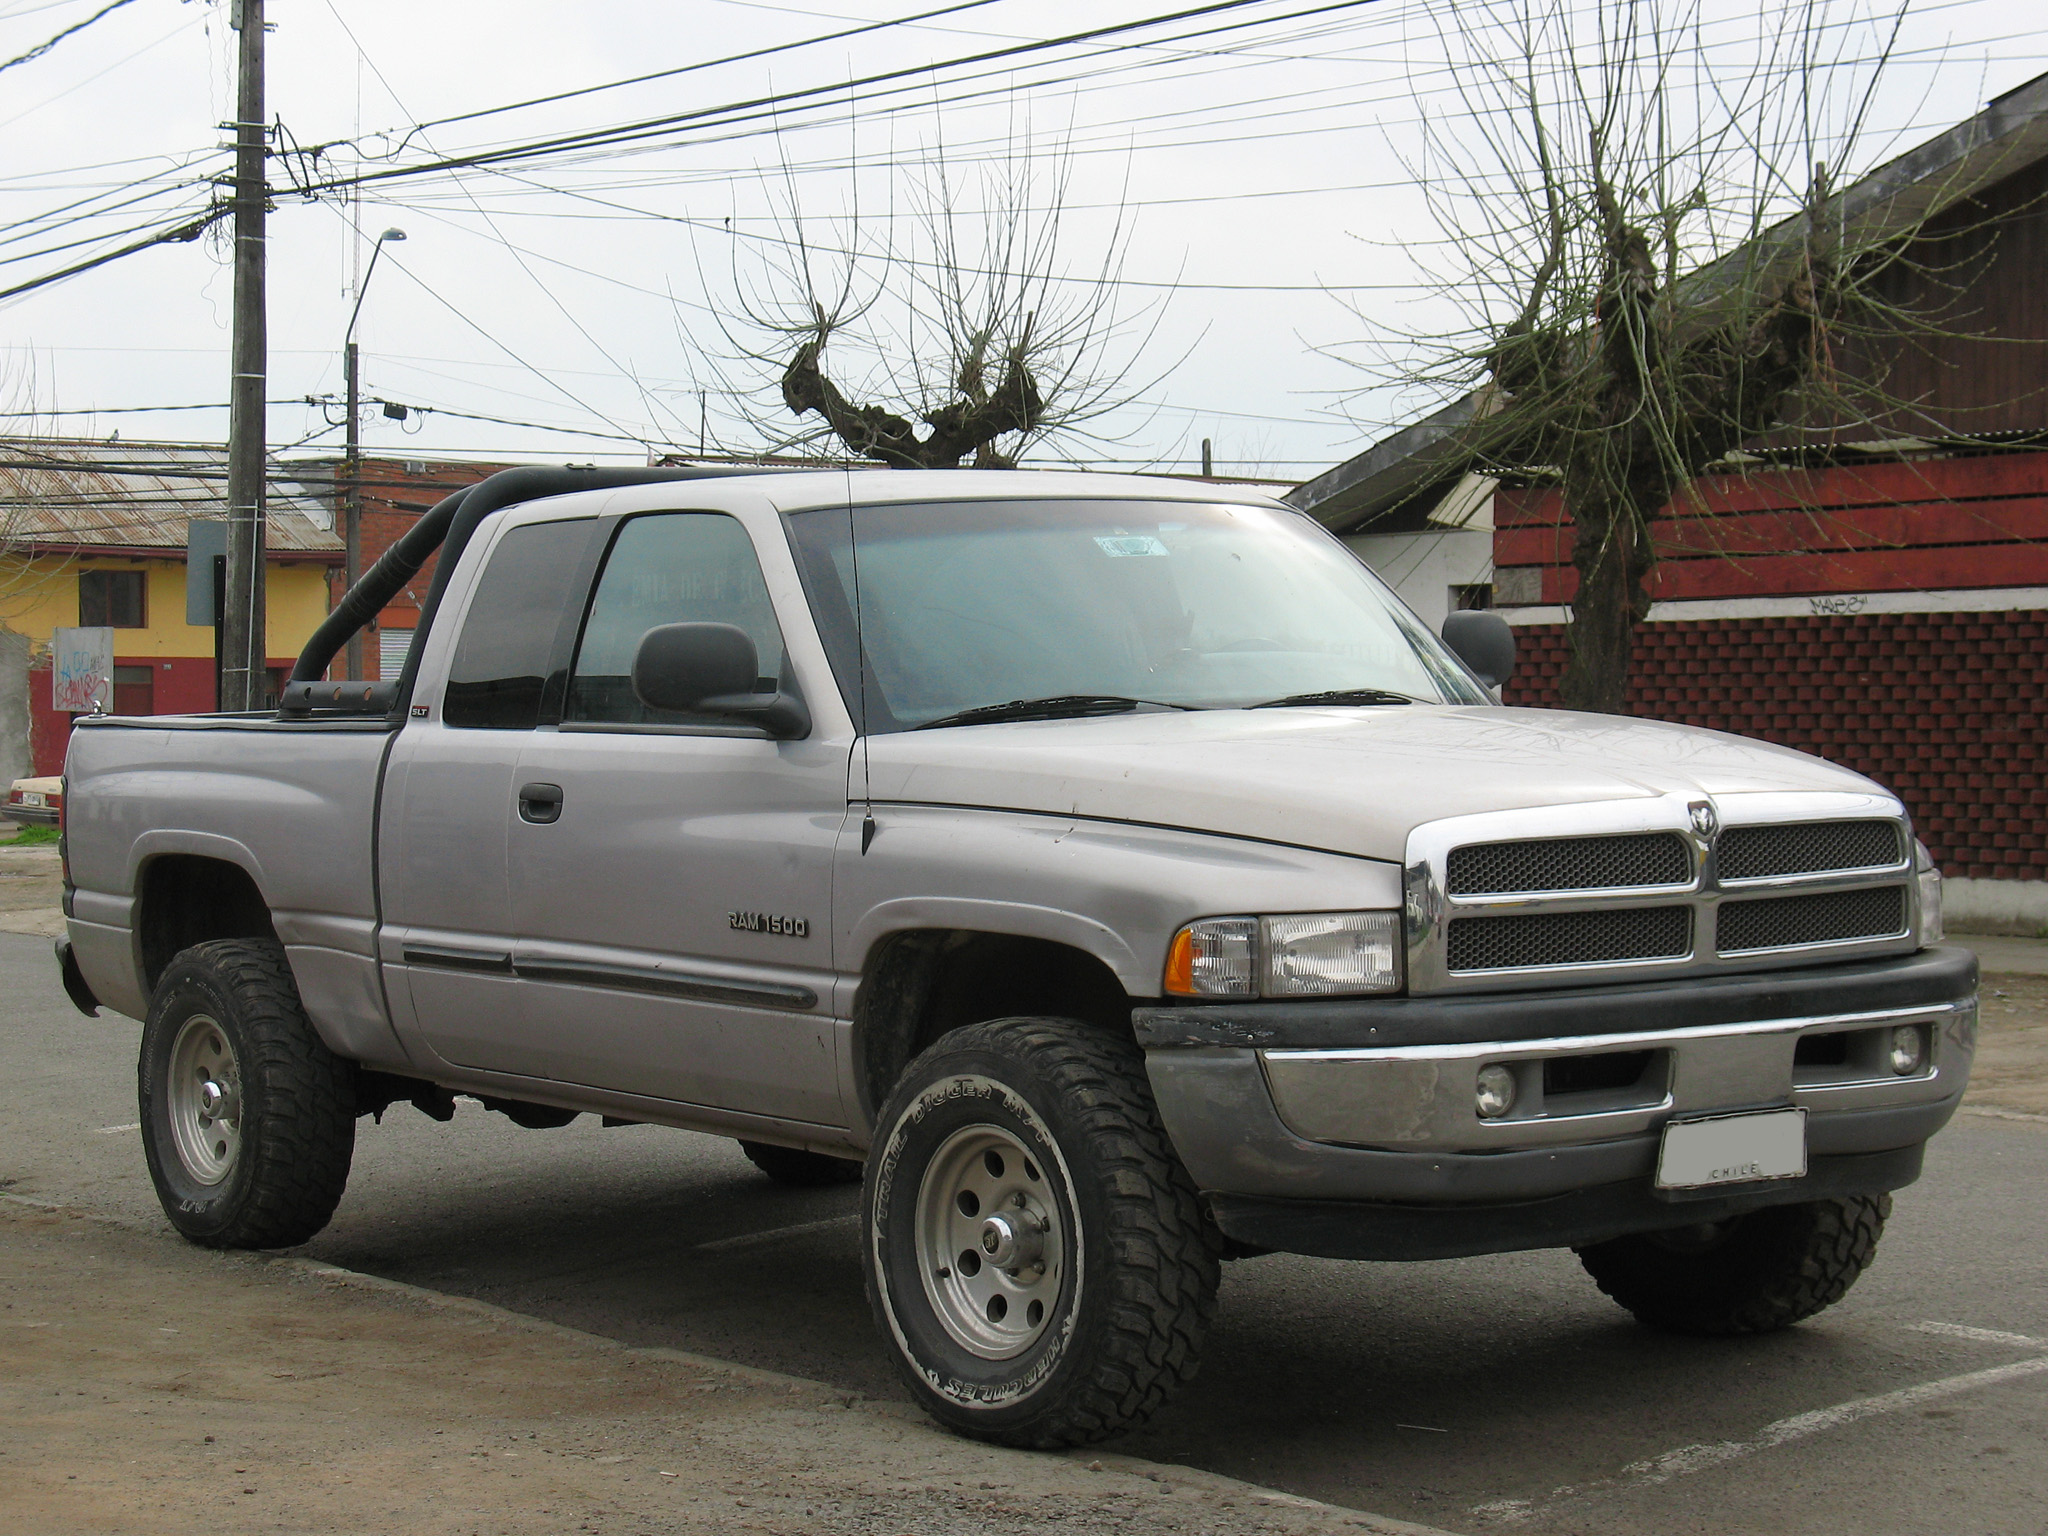 2000 Dodge Dakota Ke Diagram